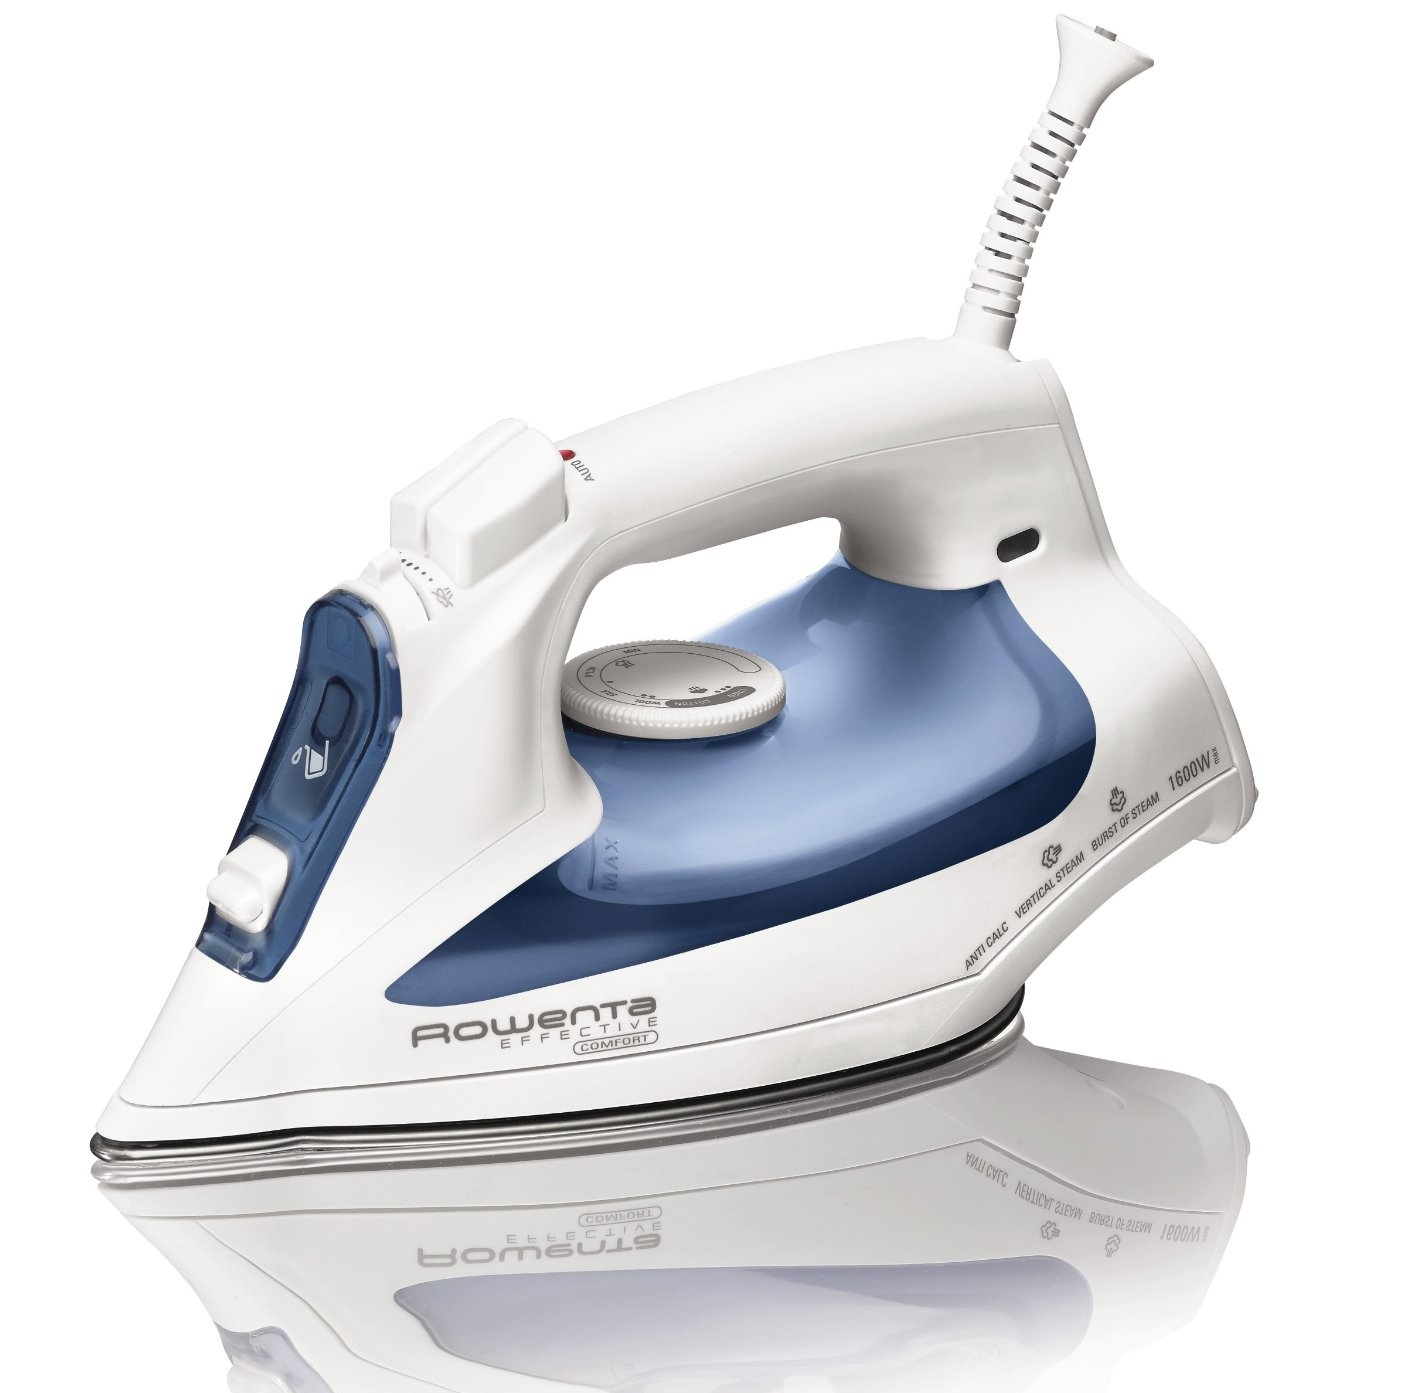 Cleaning rowenta pressure iron and steamer -  Rowenta Dw2070 Iron Review